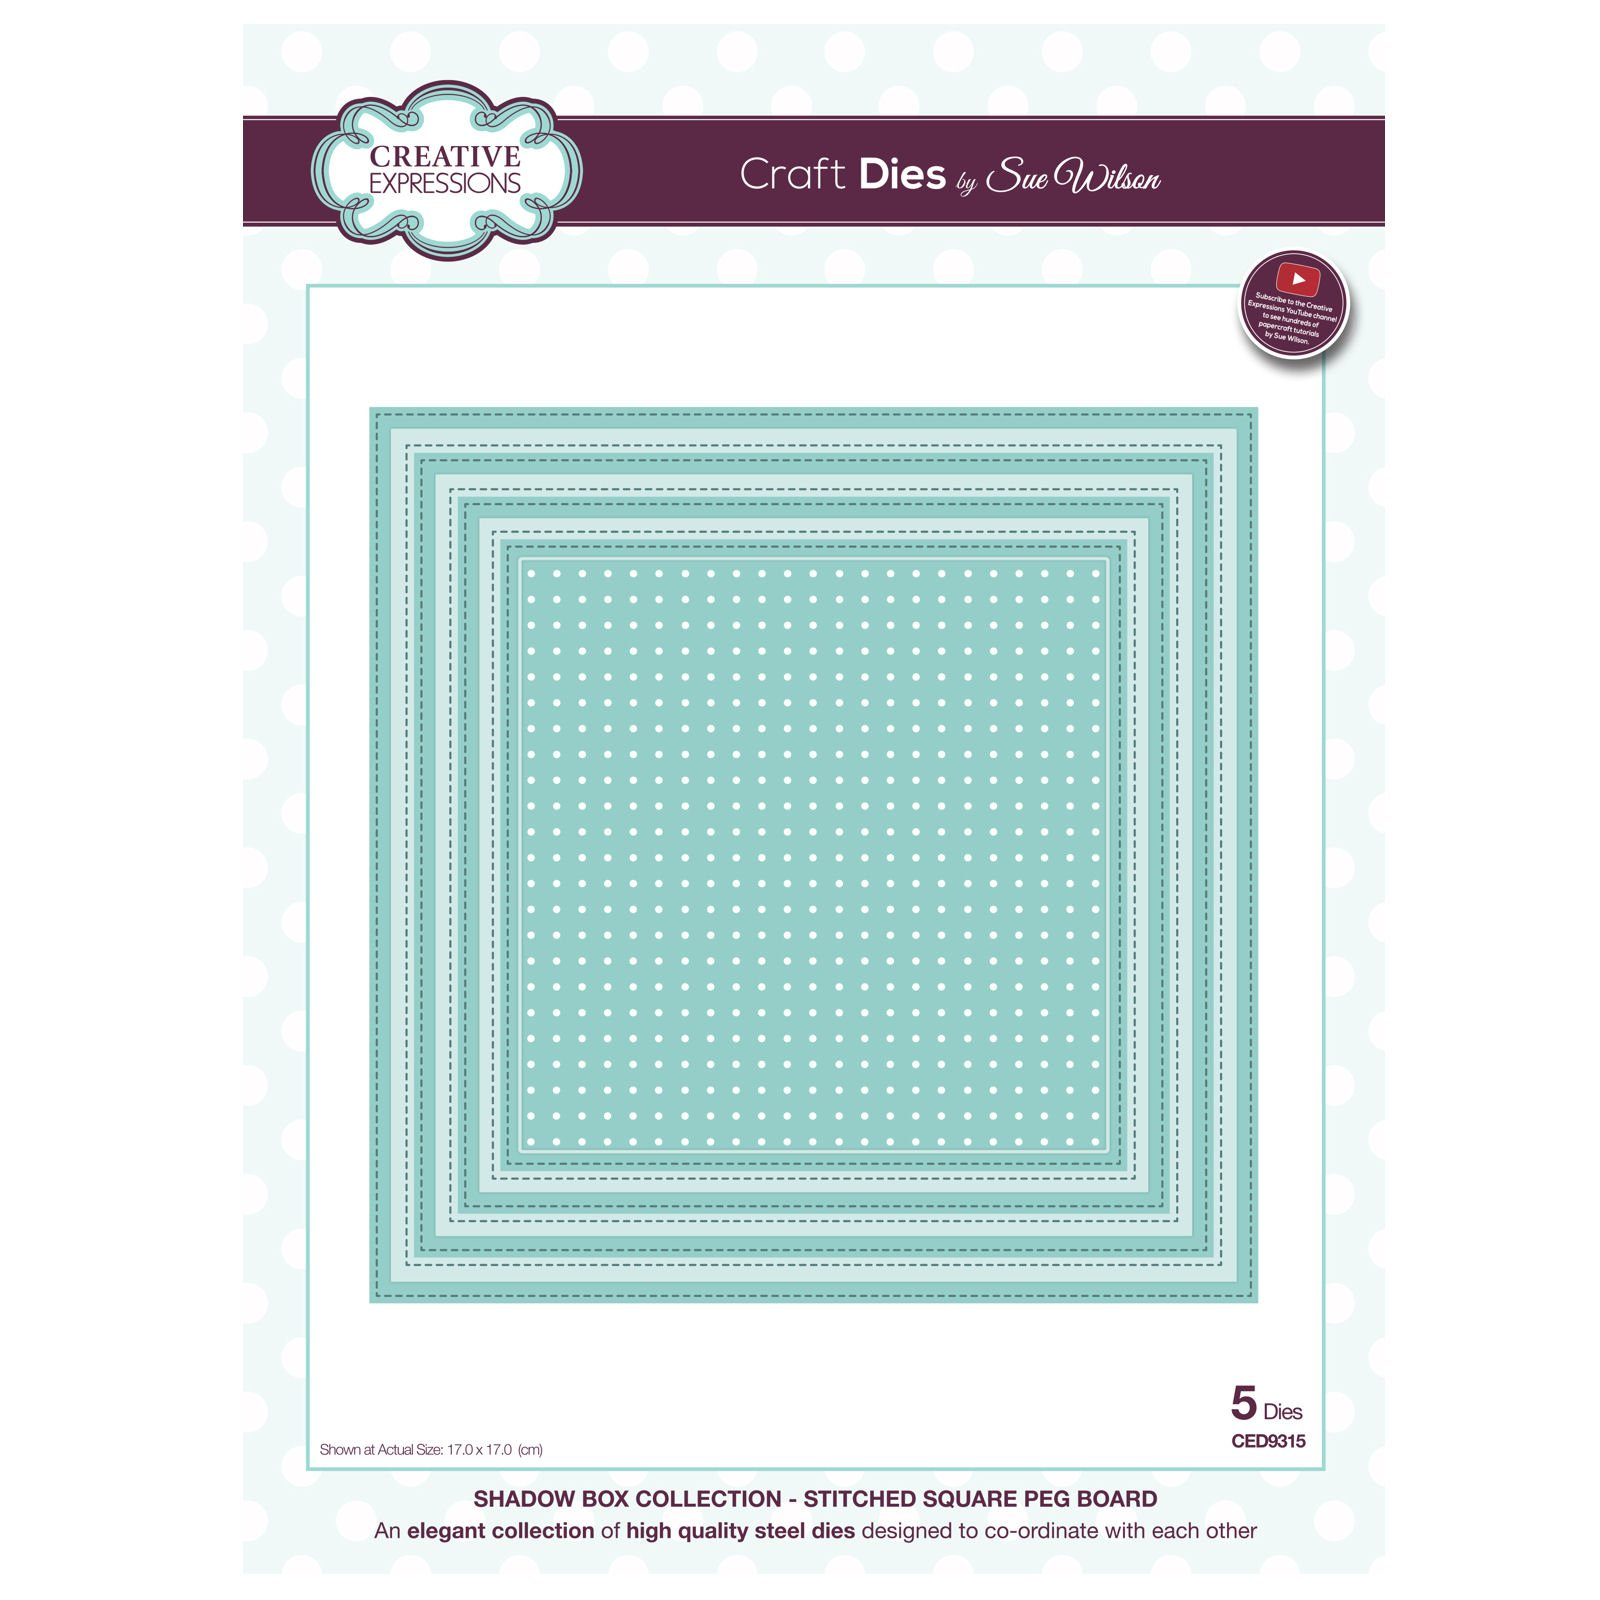 CREATIVE EXPRESSIONS Sue Wilson FESTIVE COLLECTION Holly Mini Striplet CED3039